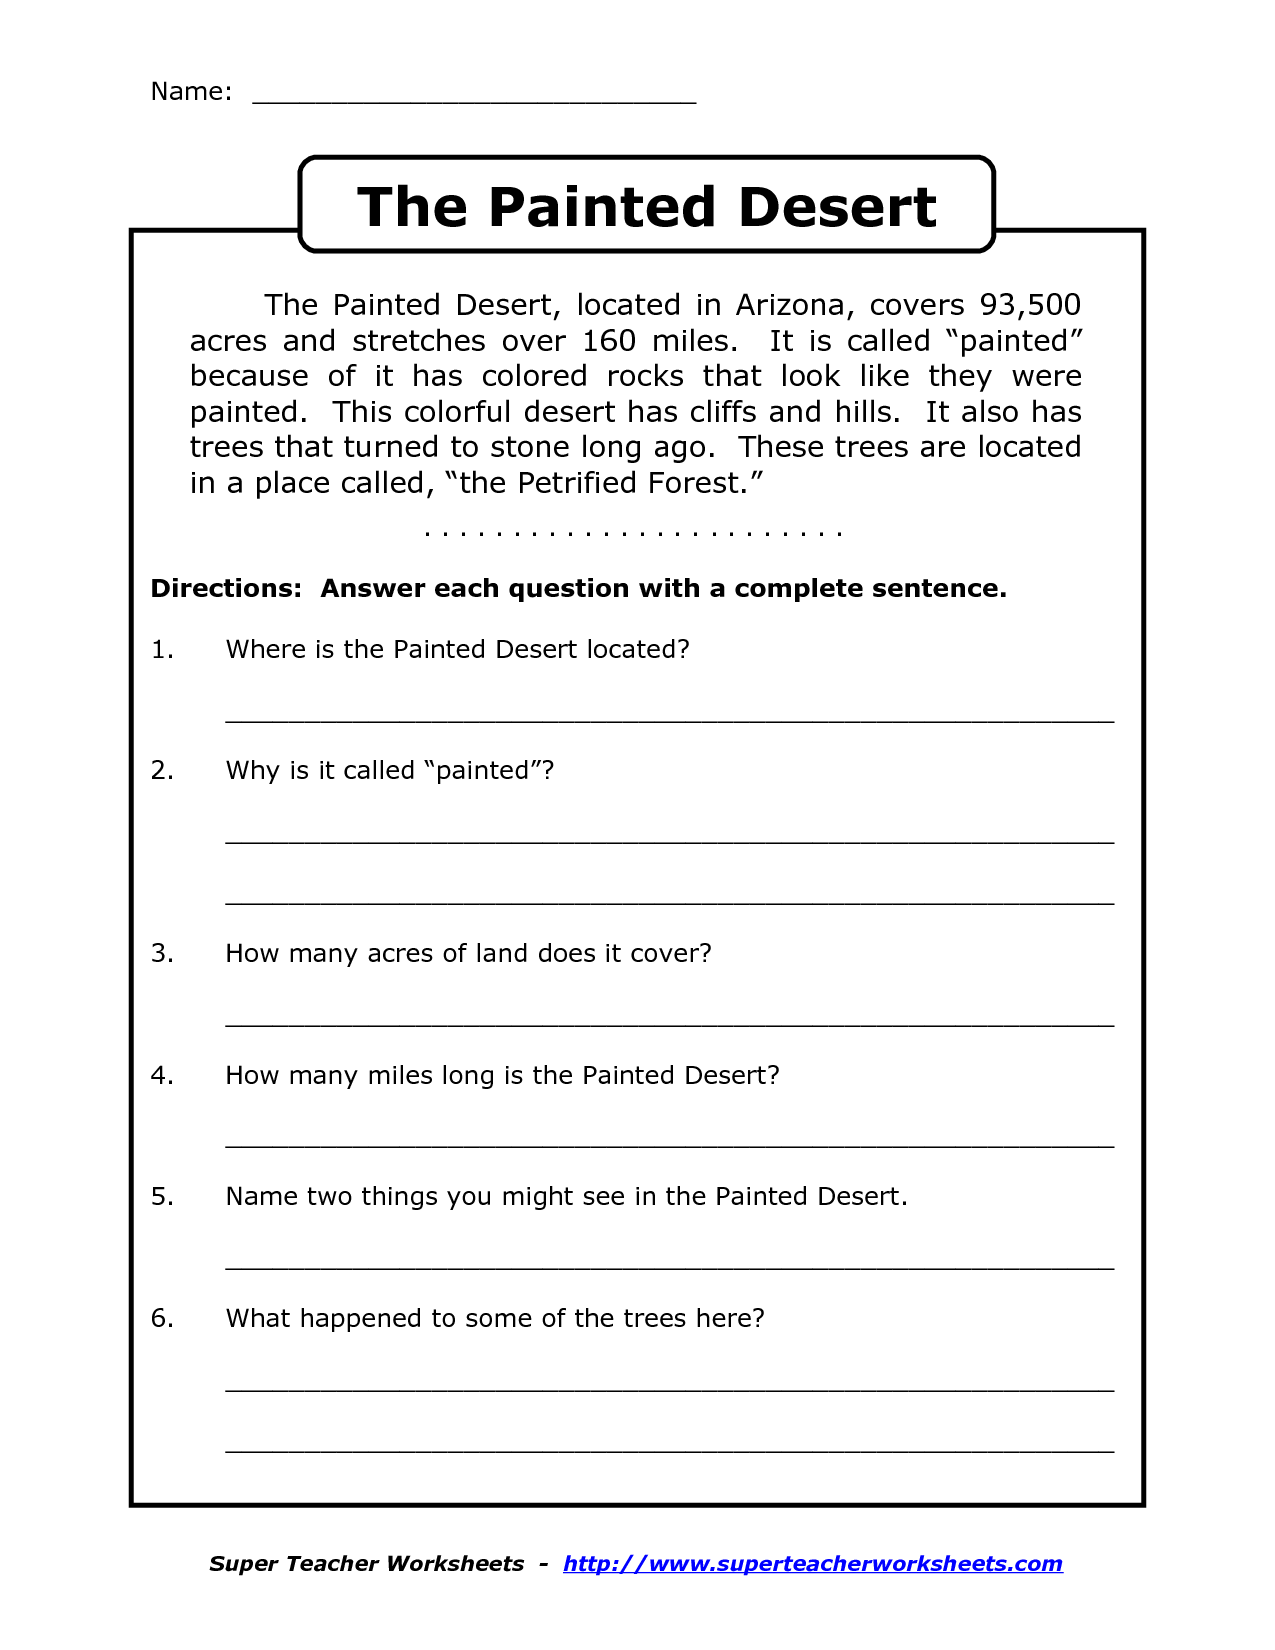 Free Printable Second Grade Reading Comprehension Worksheets and Enrichment Language Worksheets Google Search Enrichment